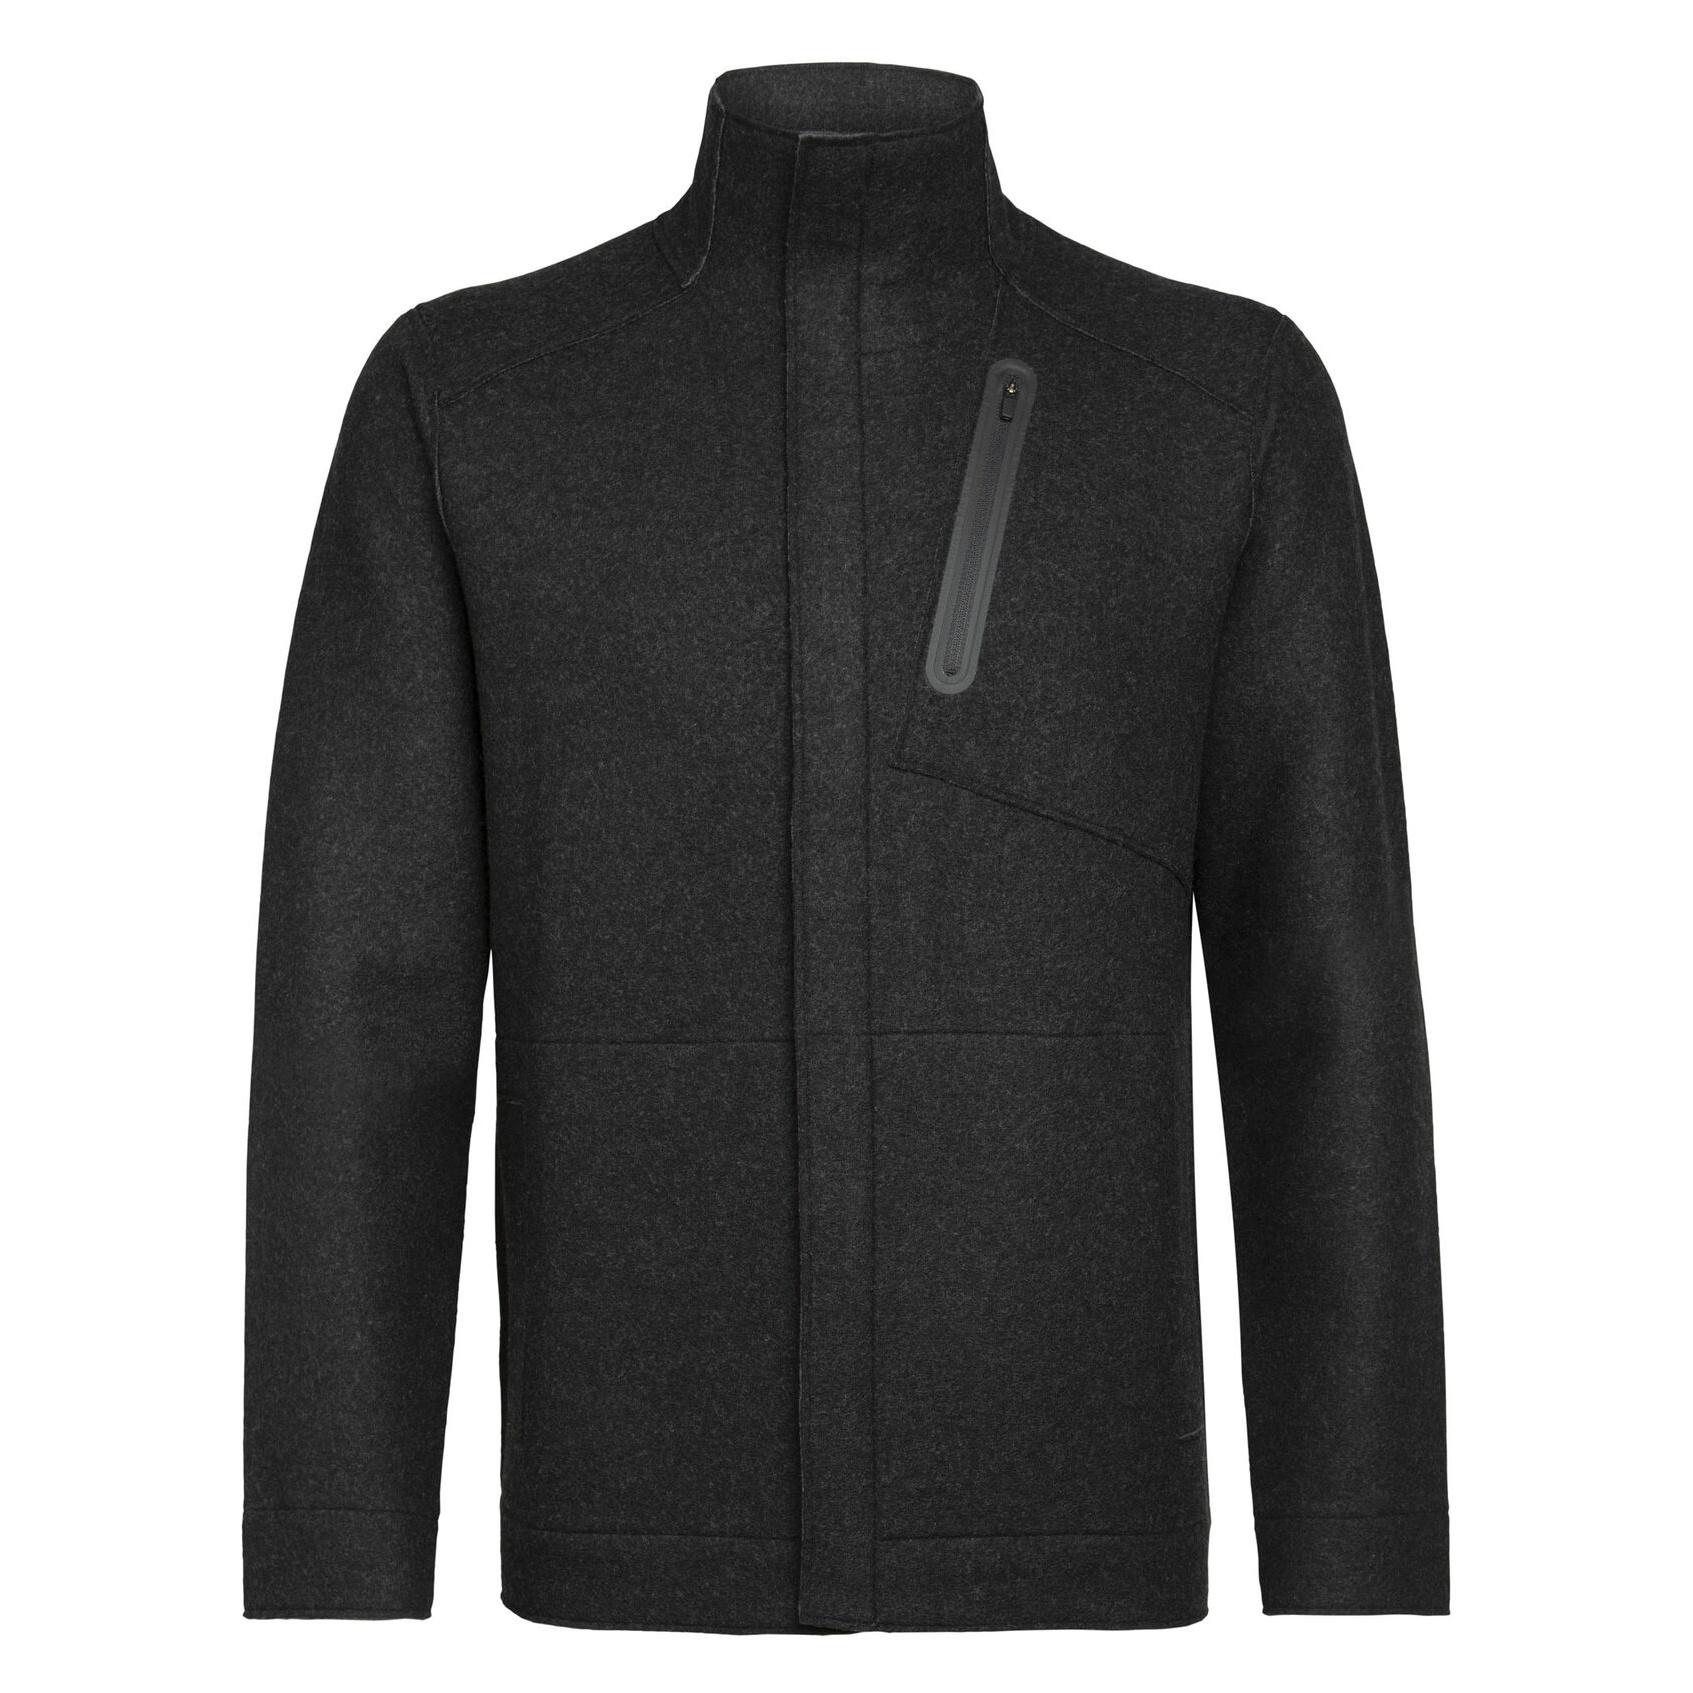 Oak Jacket - Men's